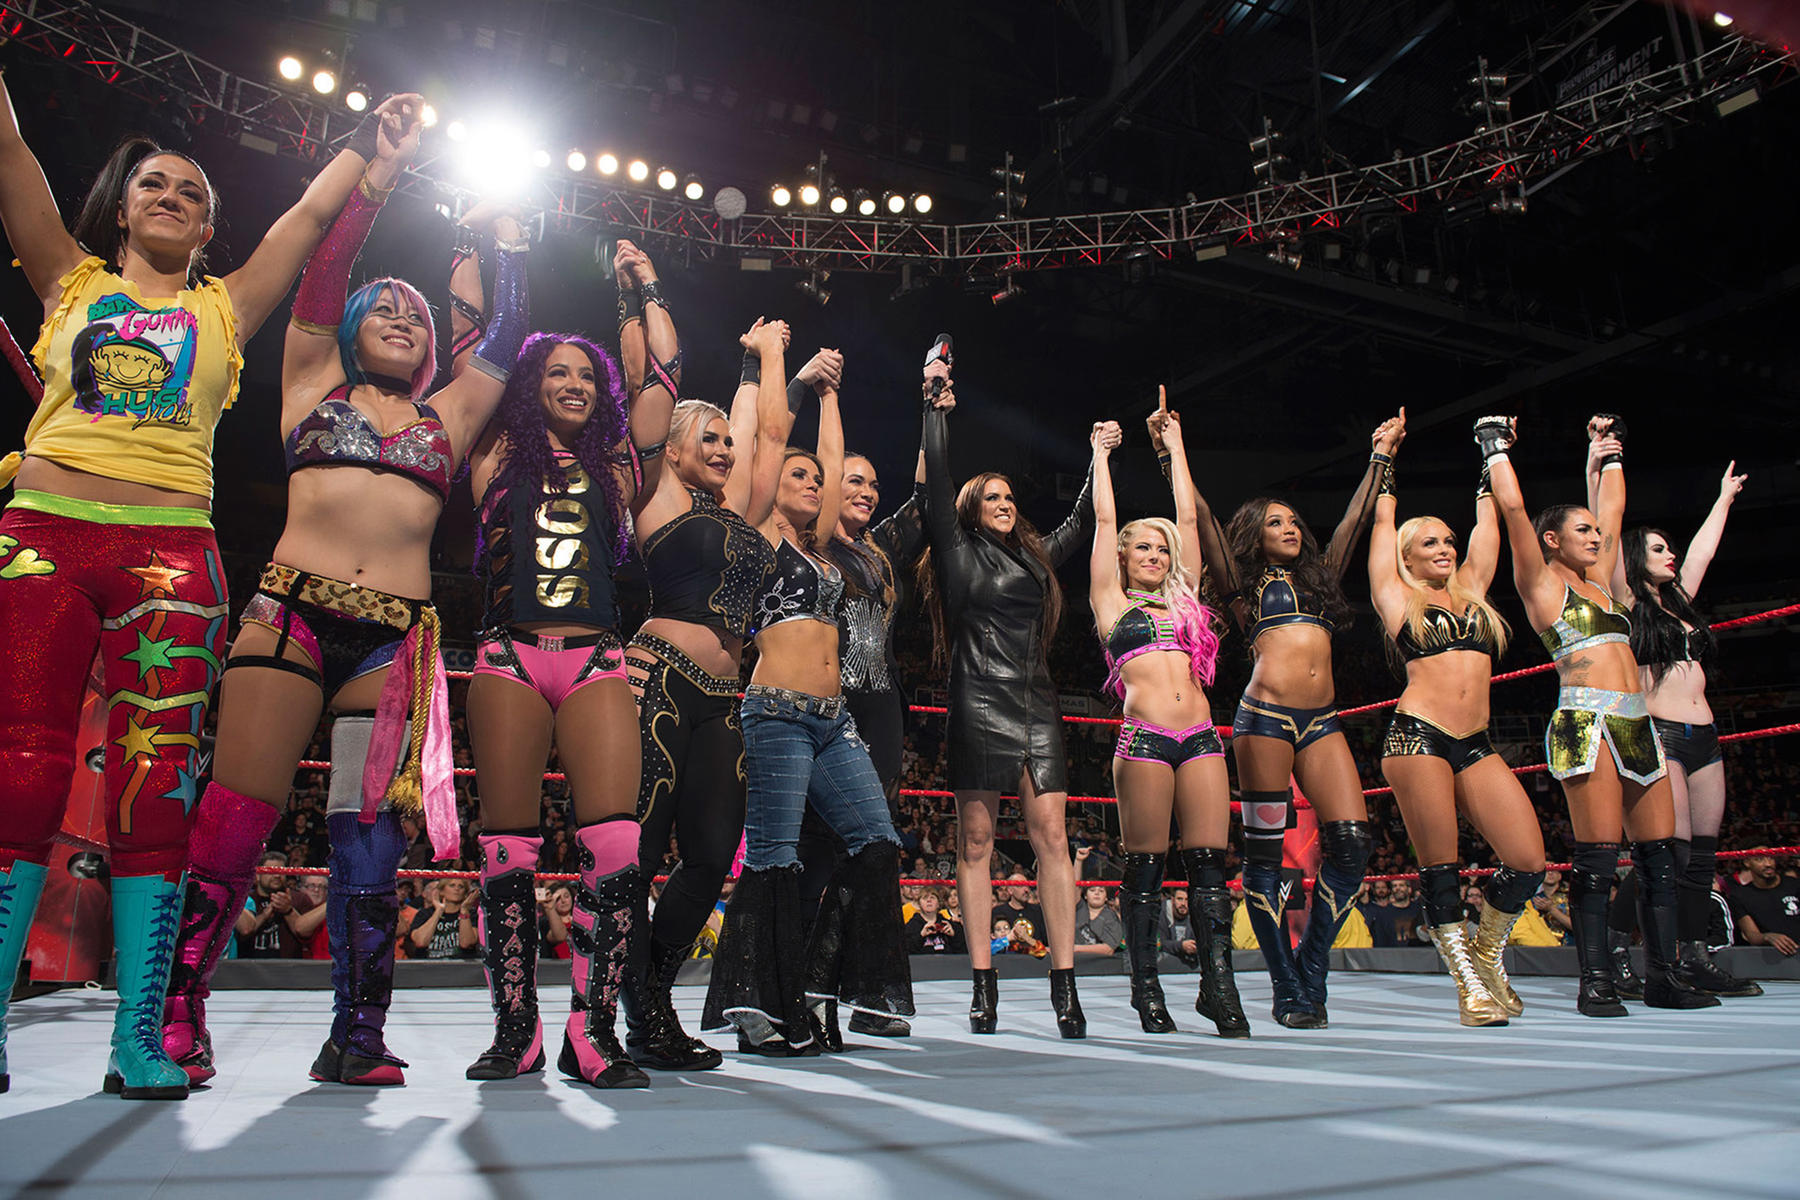 WWE Women's Evolution is deterred by lack of on-air presence